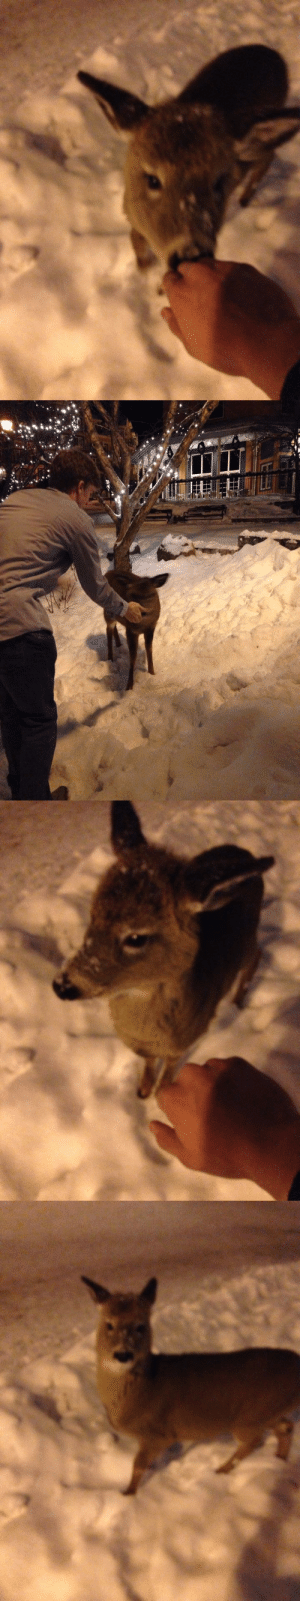 Deer, Lol, and Omg: c-bassmeow:  That magical moment where we pet a baby deer that was walking around Mont Tremblant Canada   Omg I remember this I almost cried lol